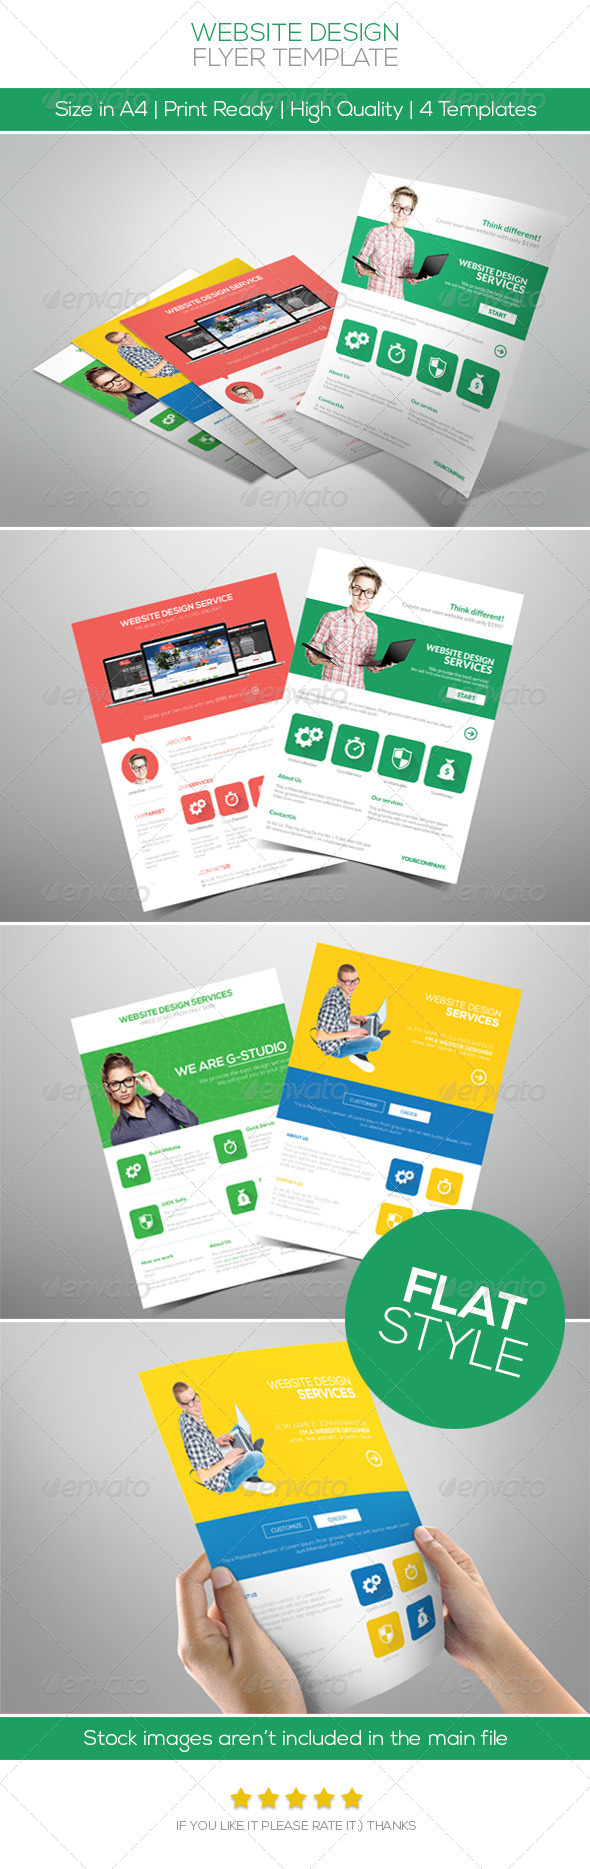 GraphicRiver Flat Website Design Flyer 5291244